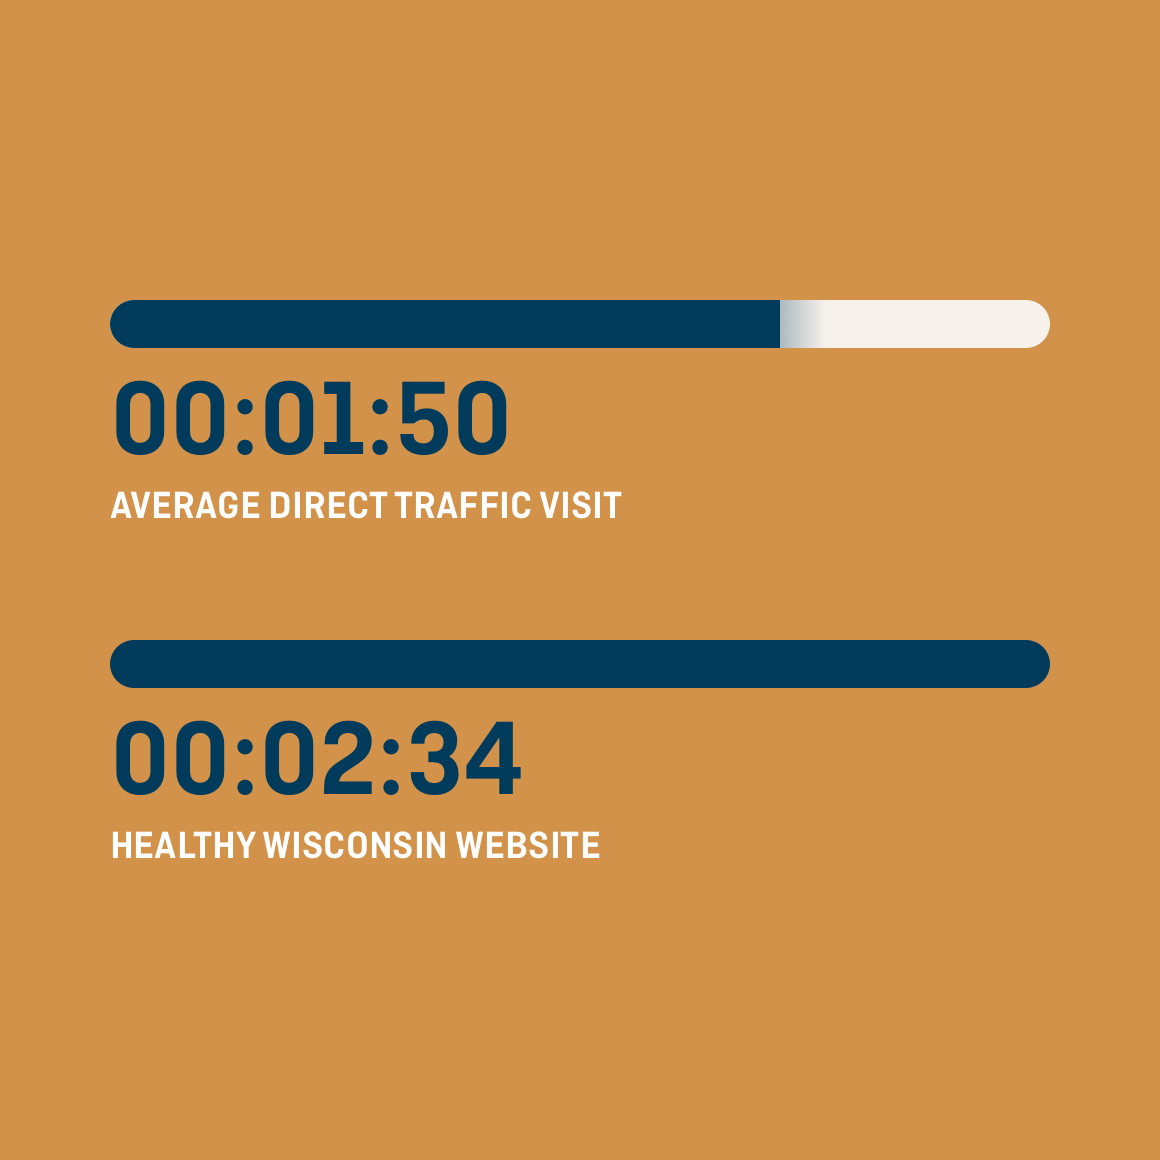 Graphic showing average direct traffic visit is 1 minute 50 seconds and average website visit is 2 minutes 34 seconds